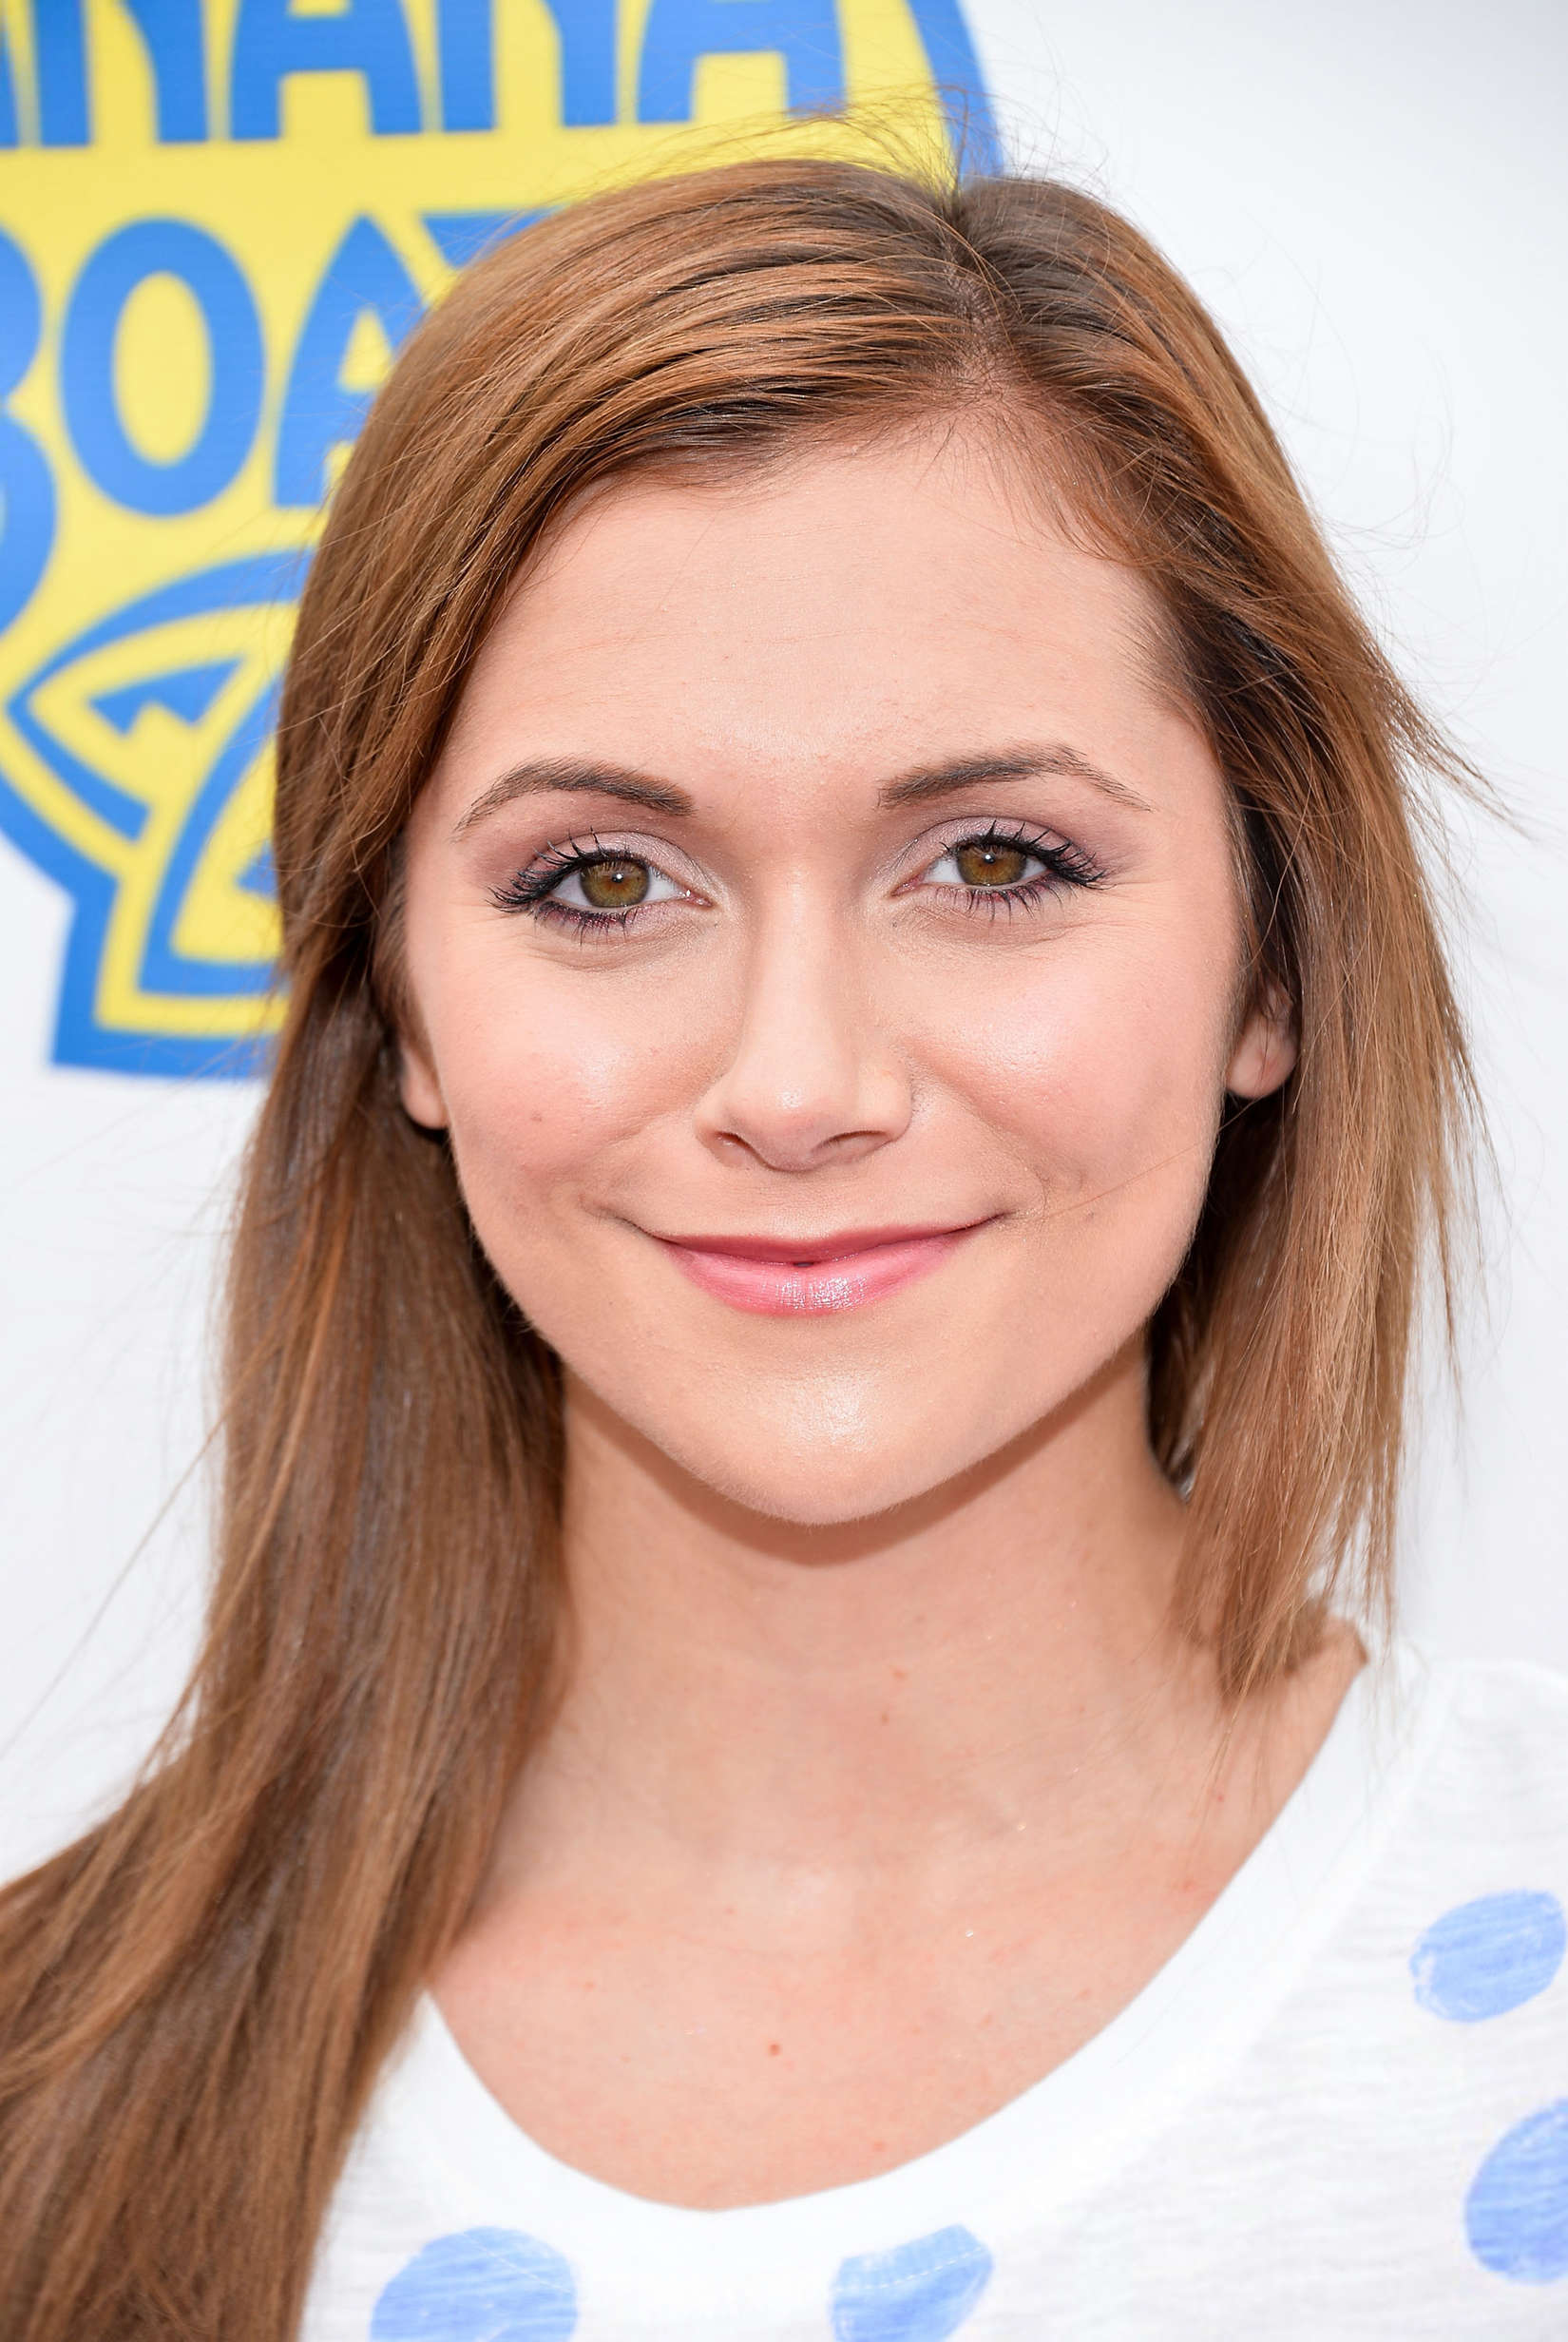 Alyson stoner who is she dating